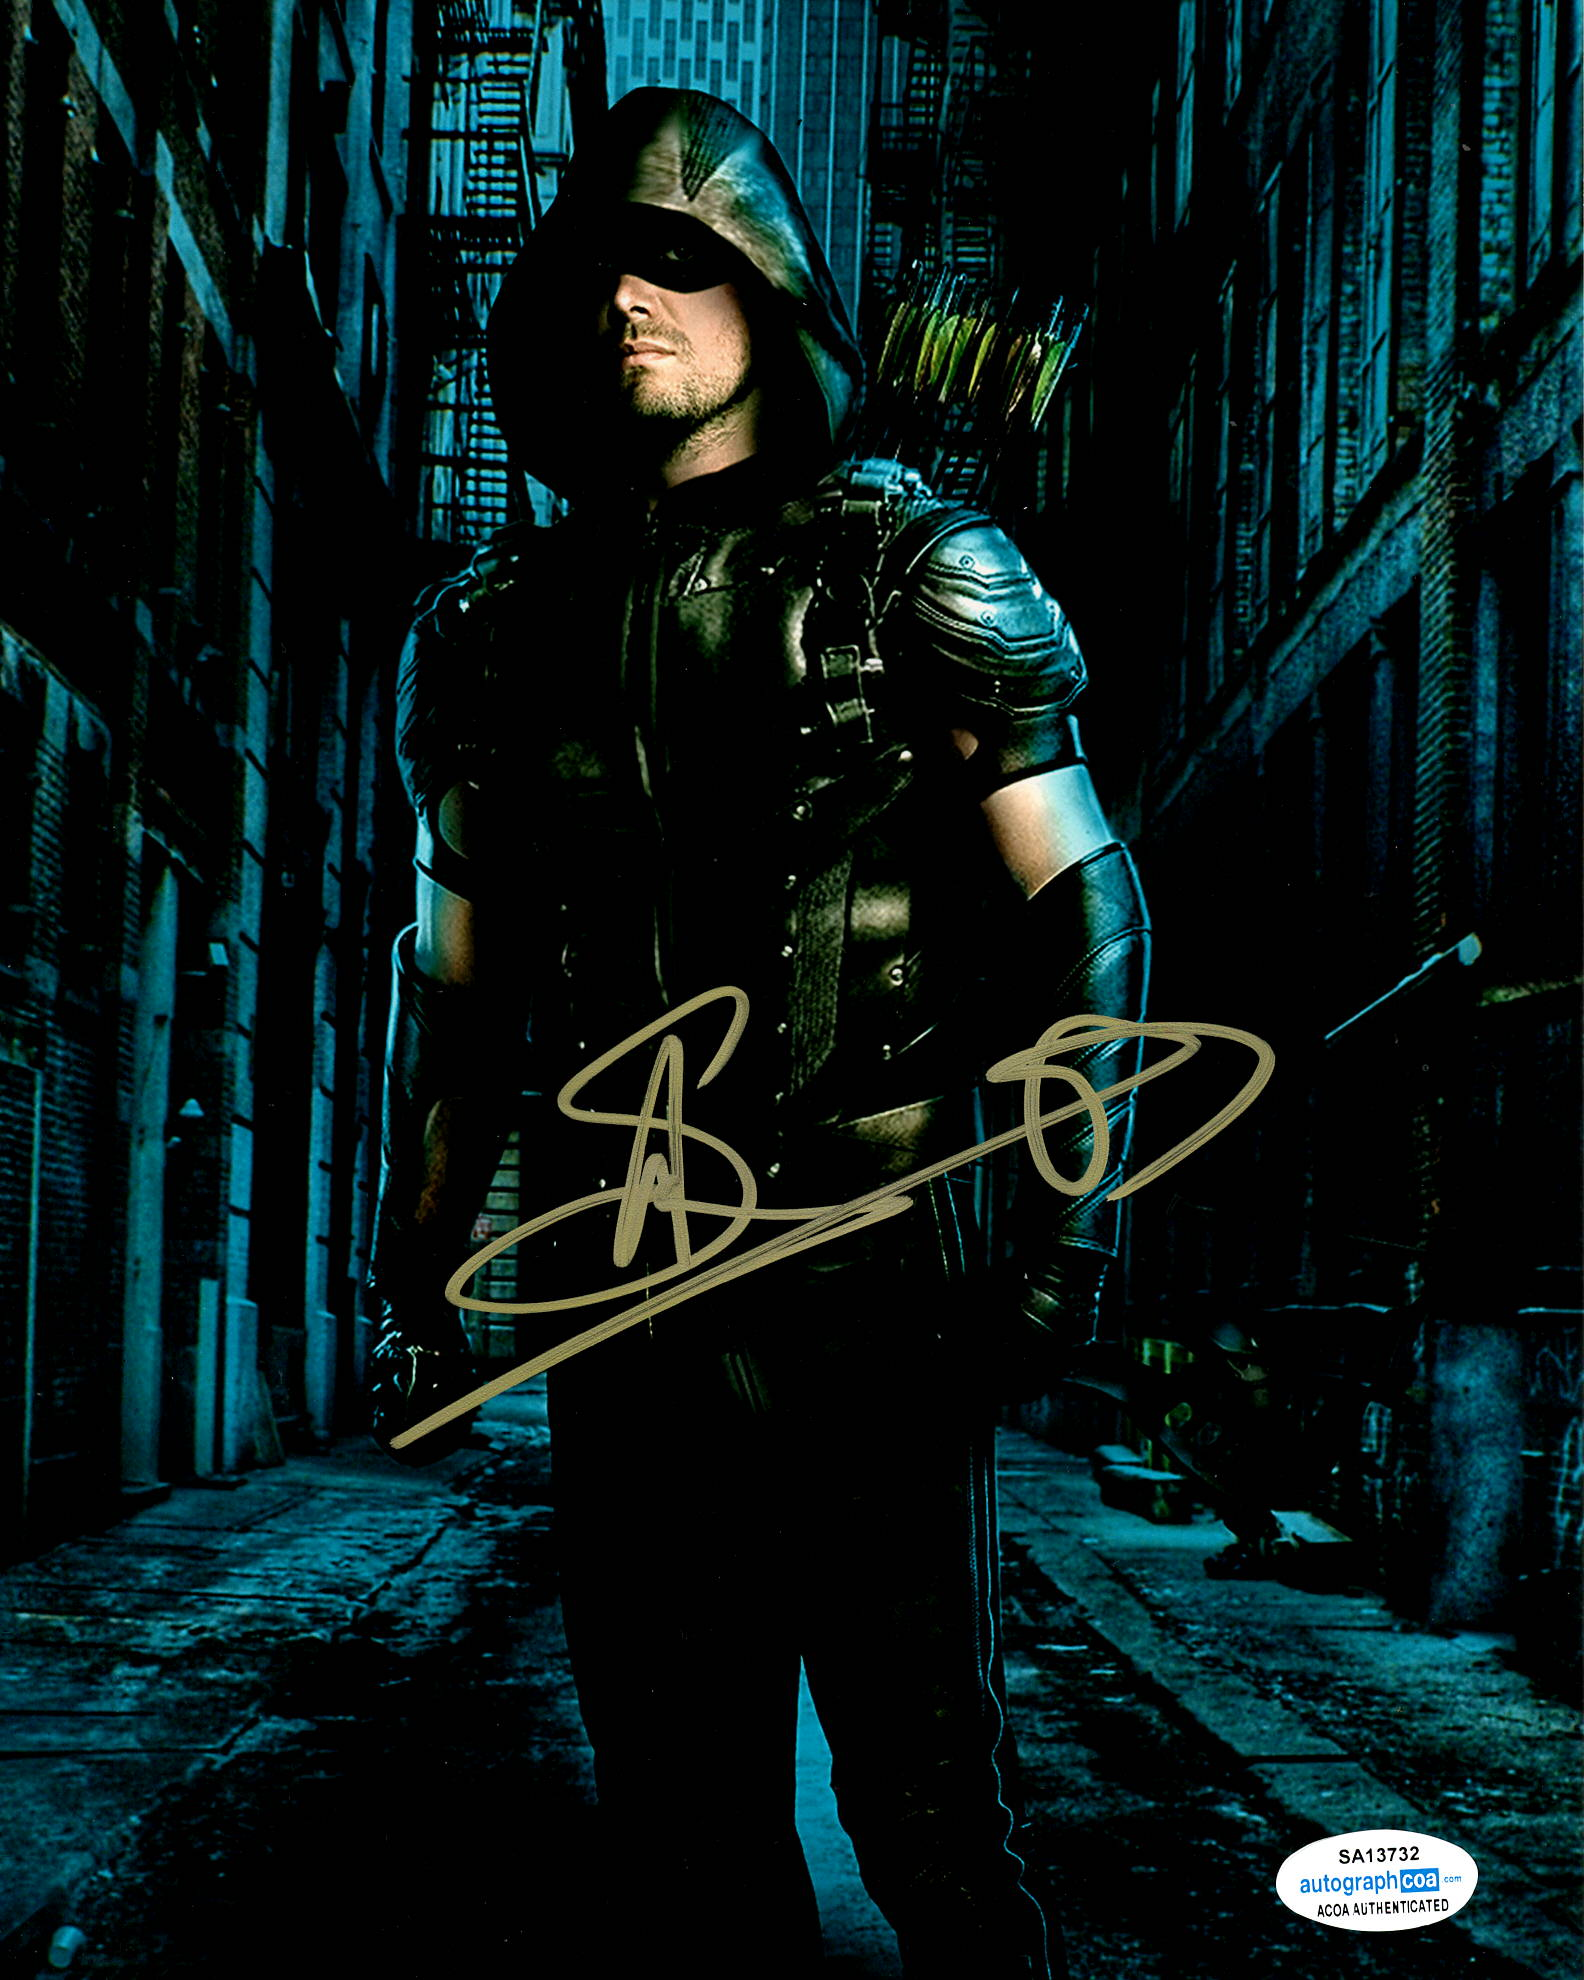 Stephen Amell Arrow Signed ACOA Autograph 8x10 Photo #1 - Outlaw Hobbies Authentic Autographs